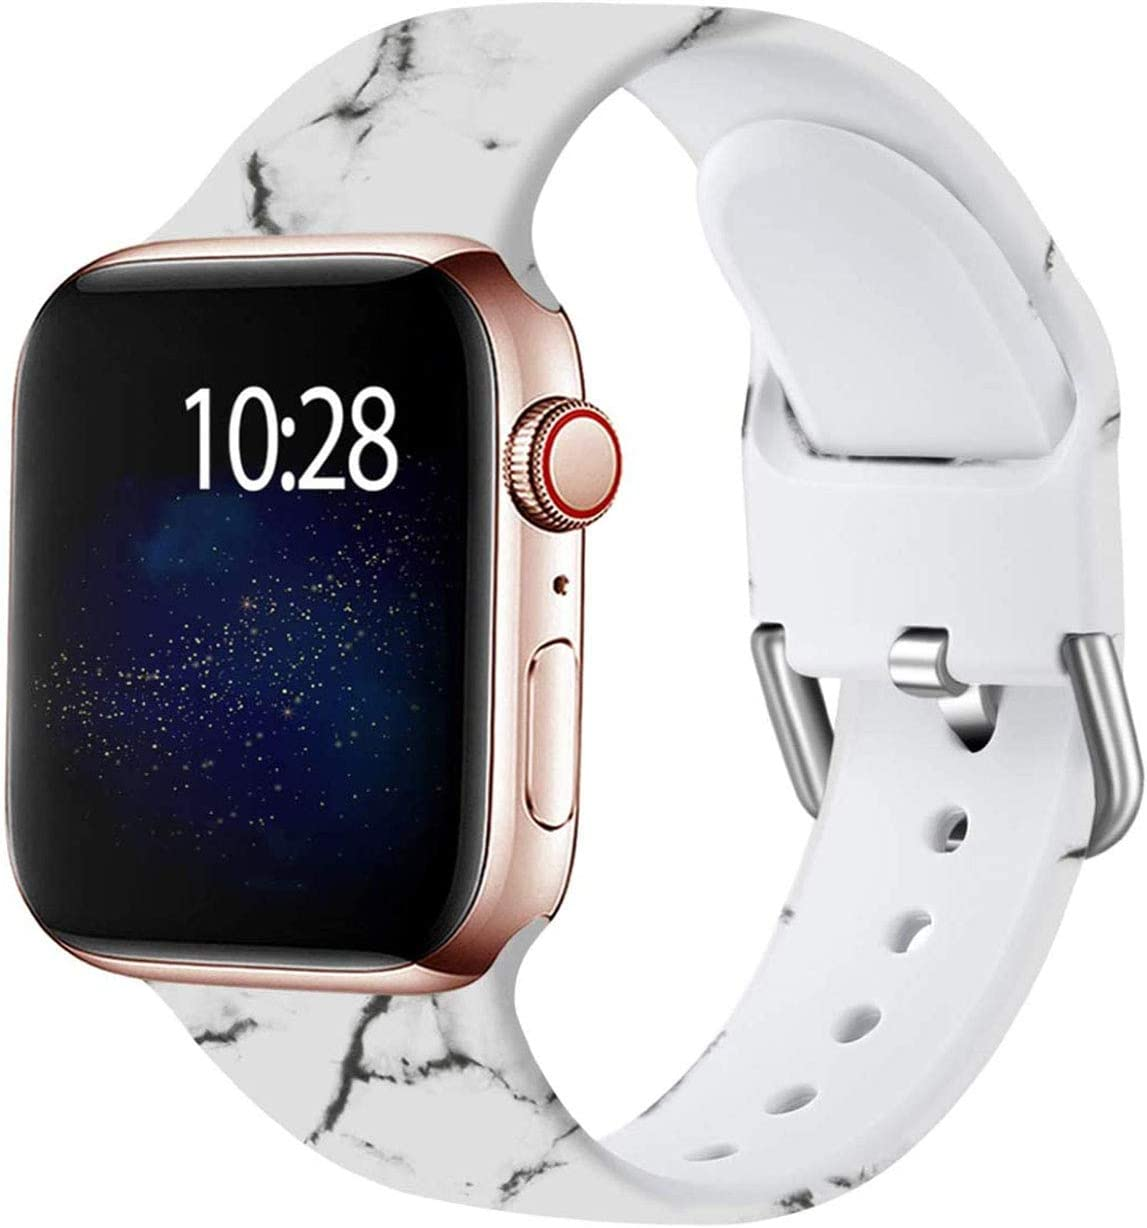 Wepro Compatible with Apple Watch Band 38mm 40mm iWatch SE & Series 6, Series 3, Series 5 4 2 1 for Women, Fadeless Floral Pattern Printed Silicone Wrist Bands Replacement, Marble, S/M